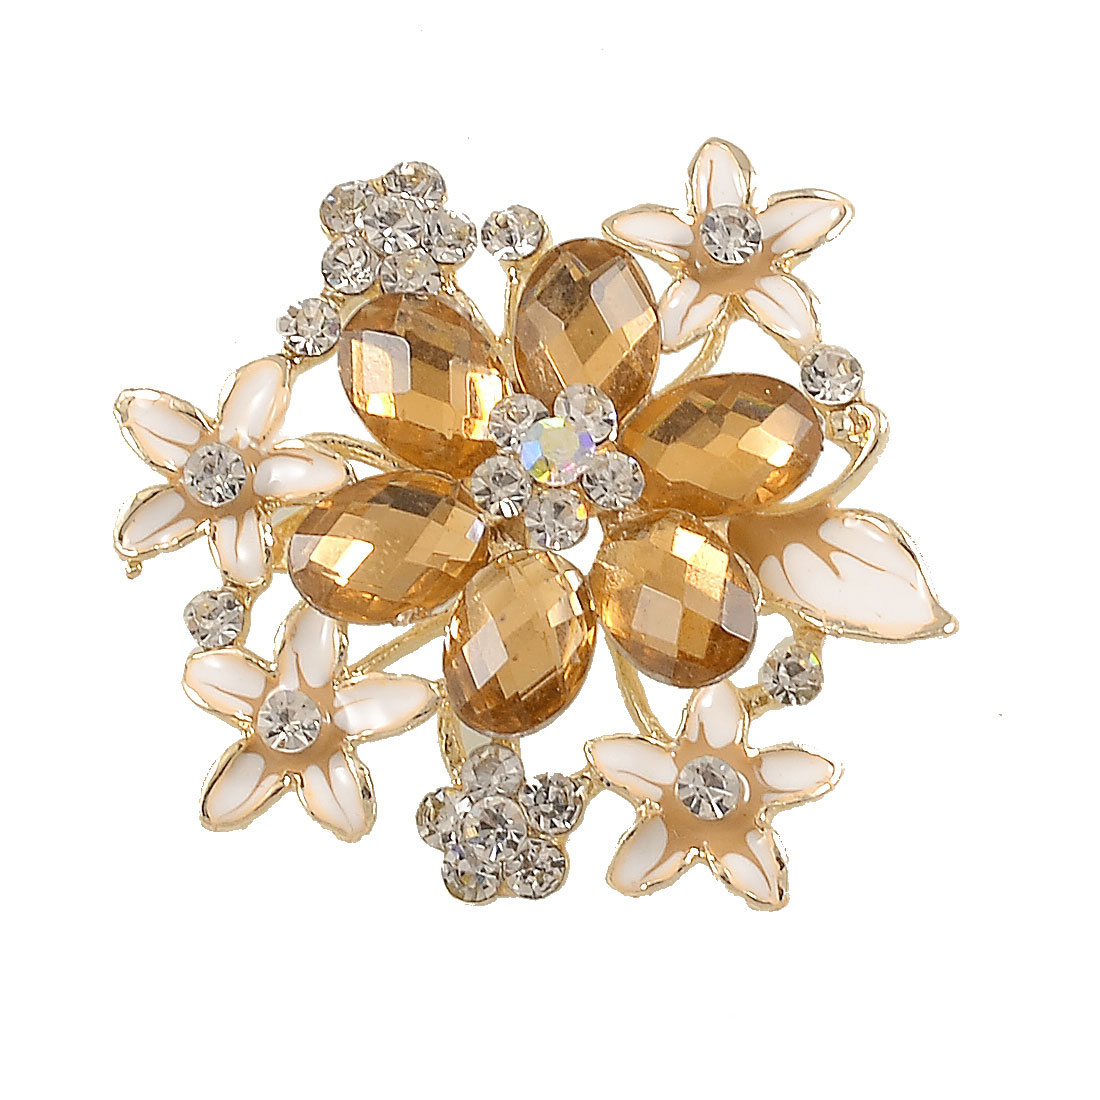 Clear Amber Color Rhinestone Inlaid Flower Cluster Decor Safety Pin Brooch Breastpin